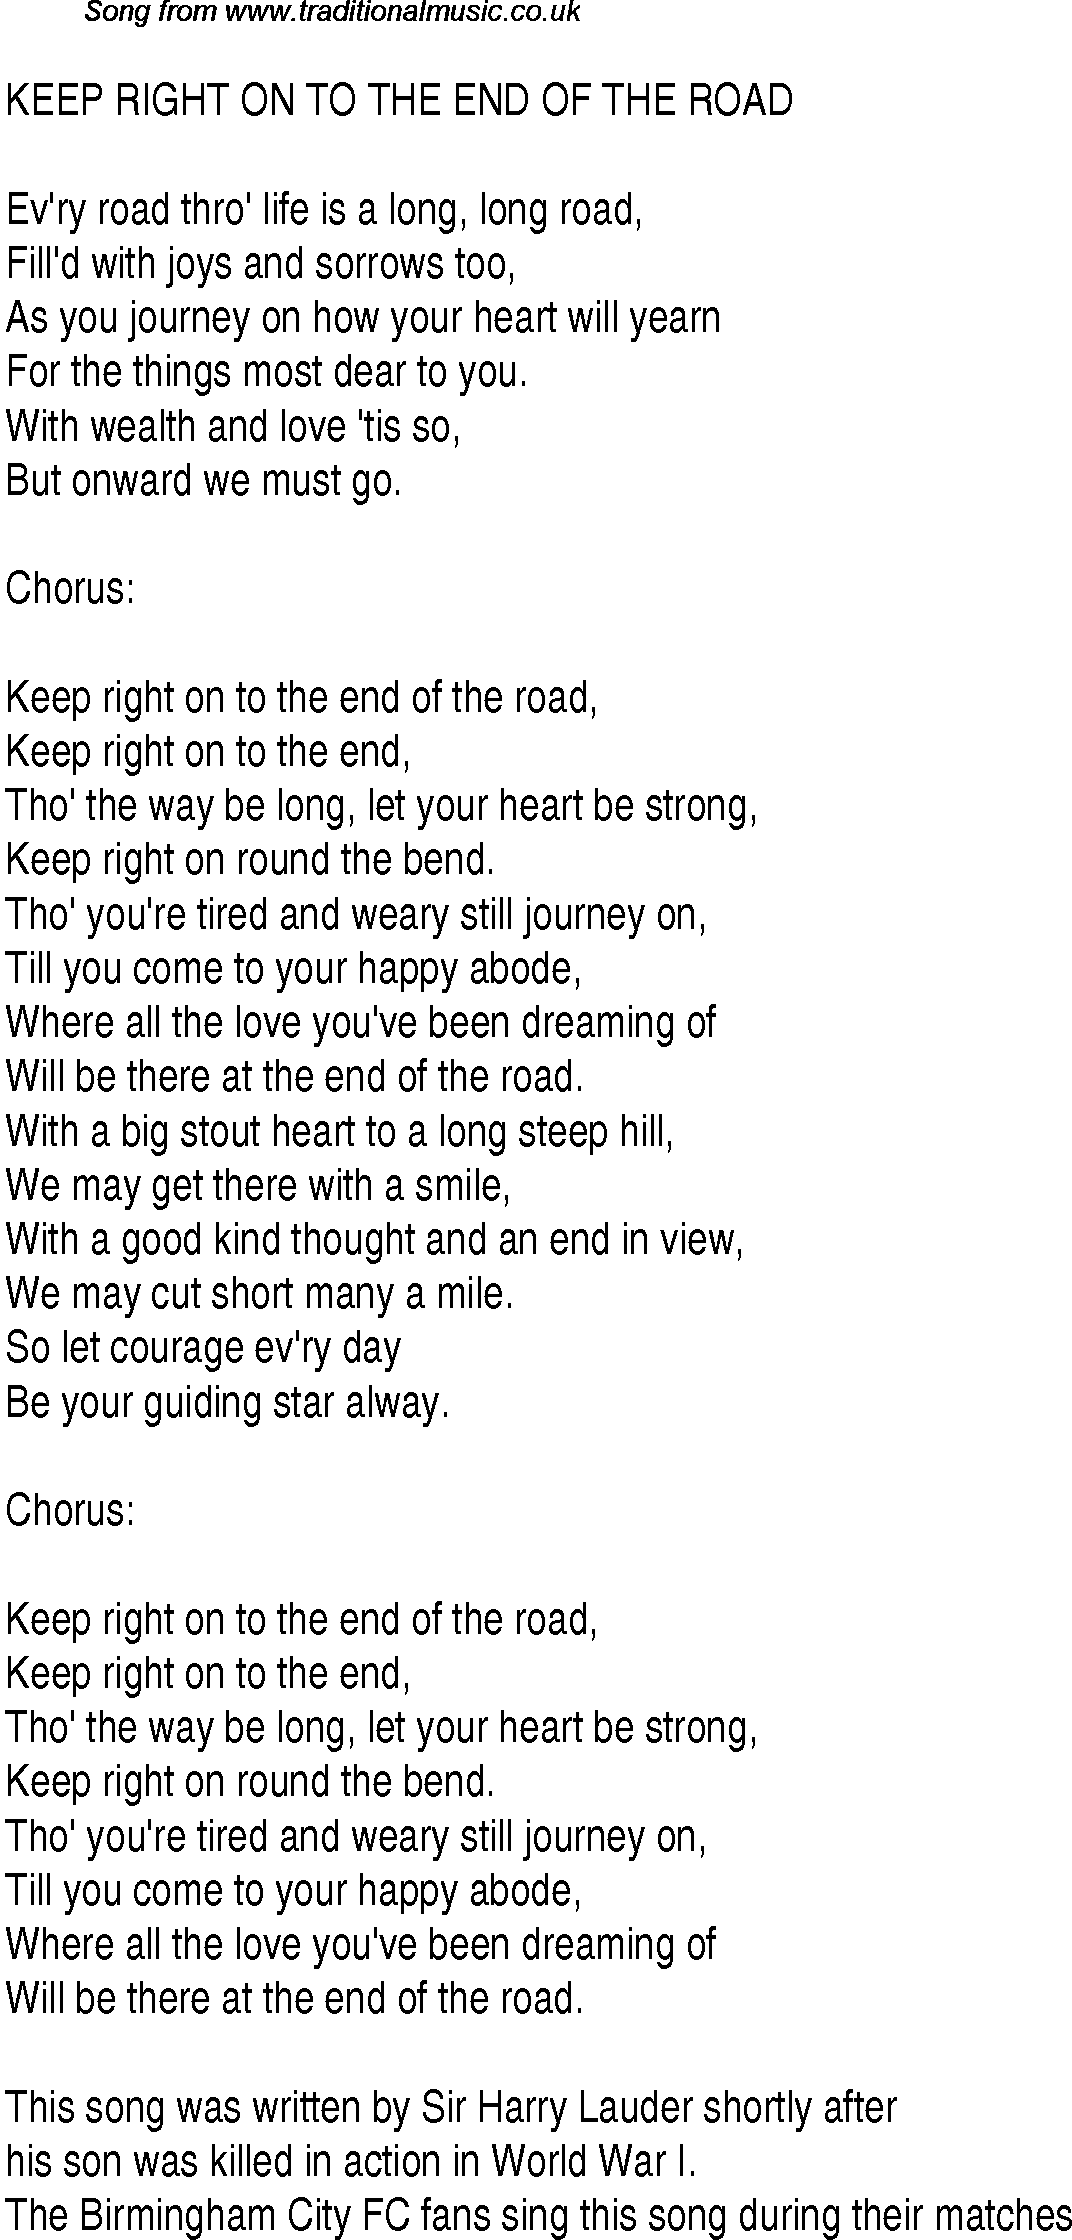 1940s Top Songs: lyrics for Keep Right On To The End Of The Road